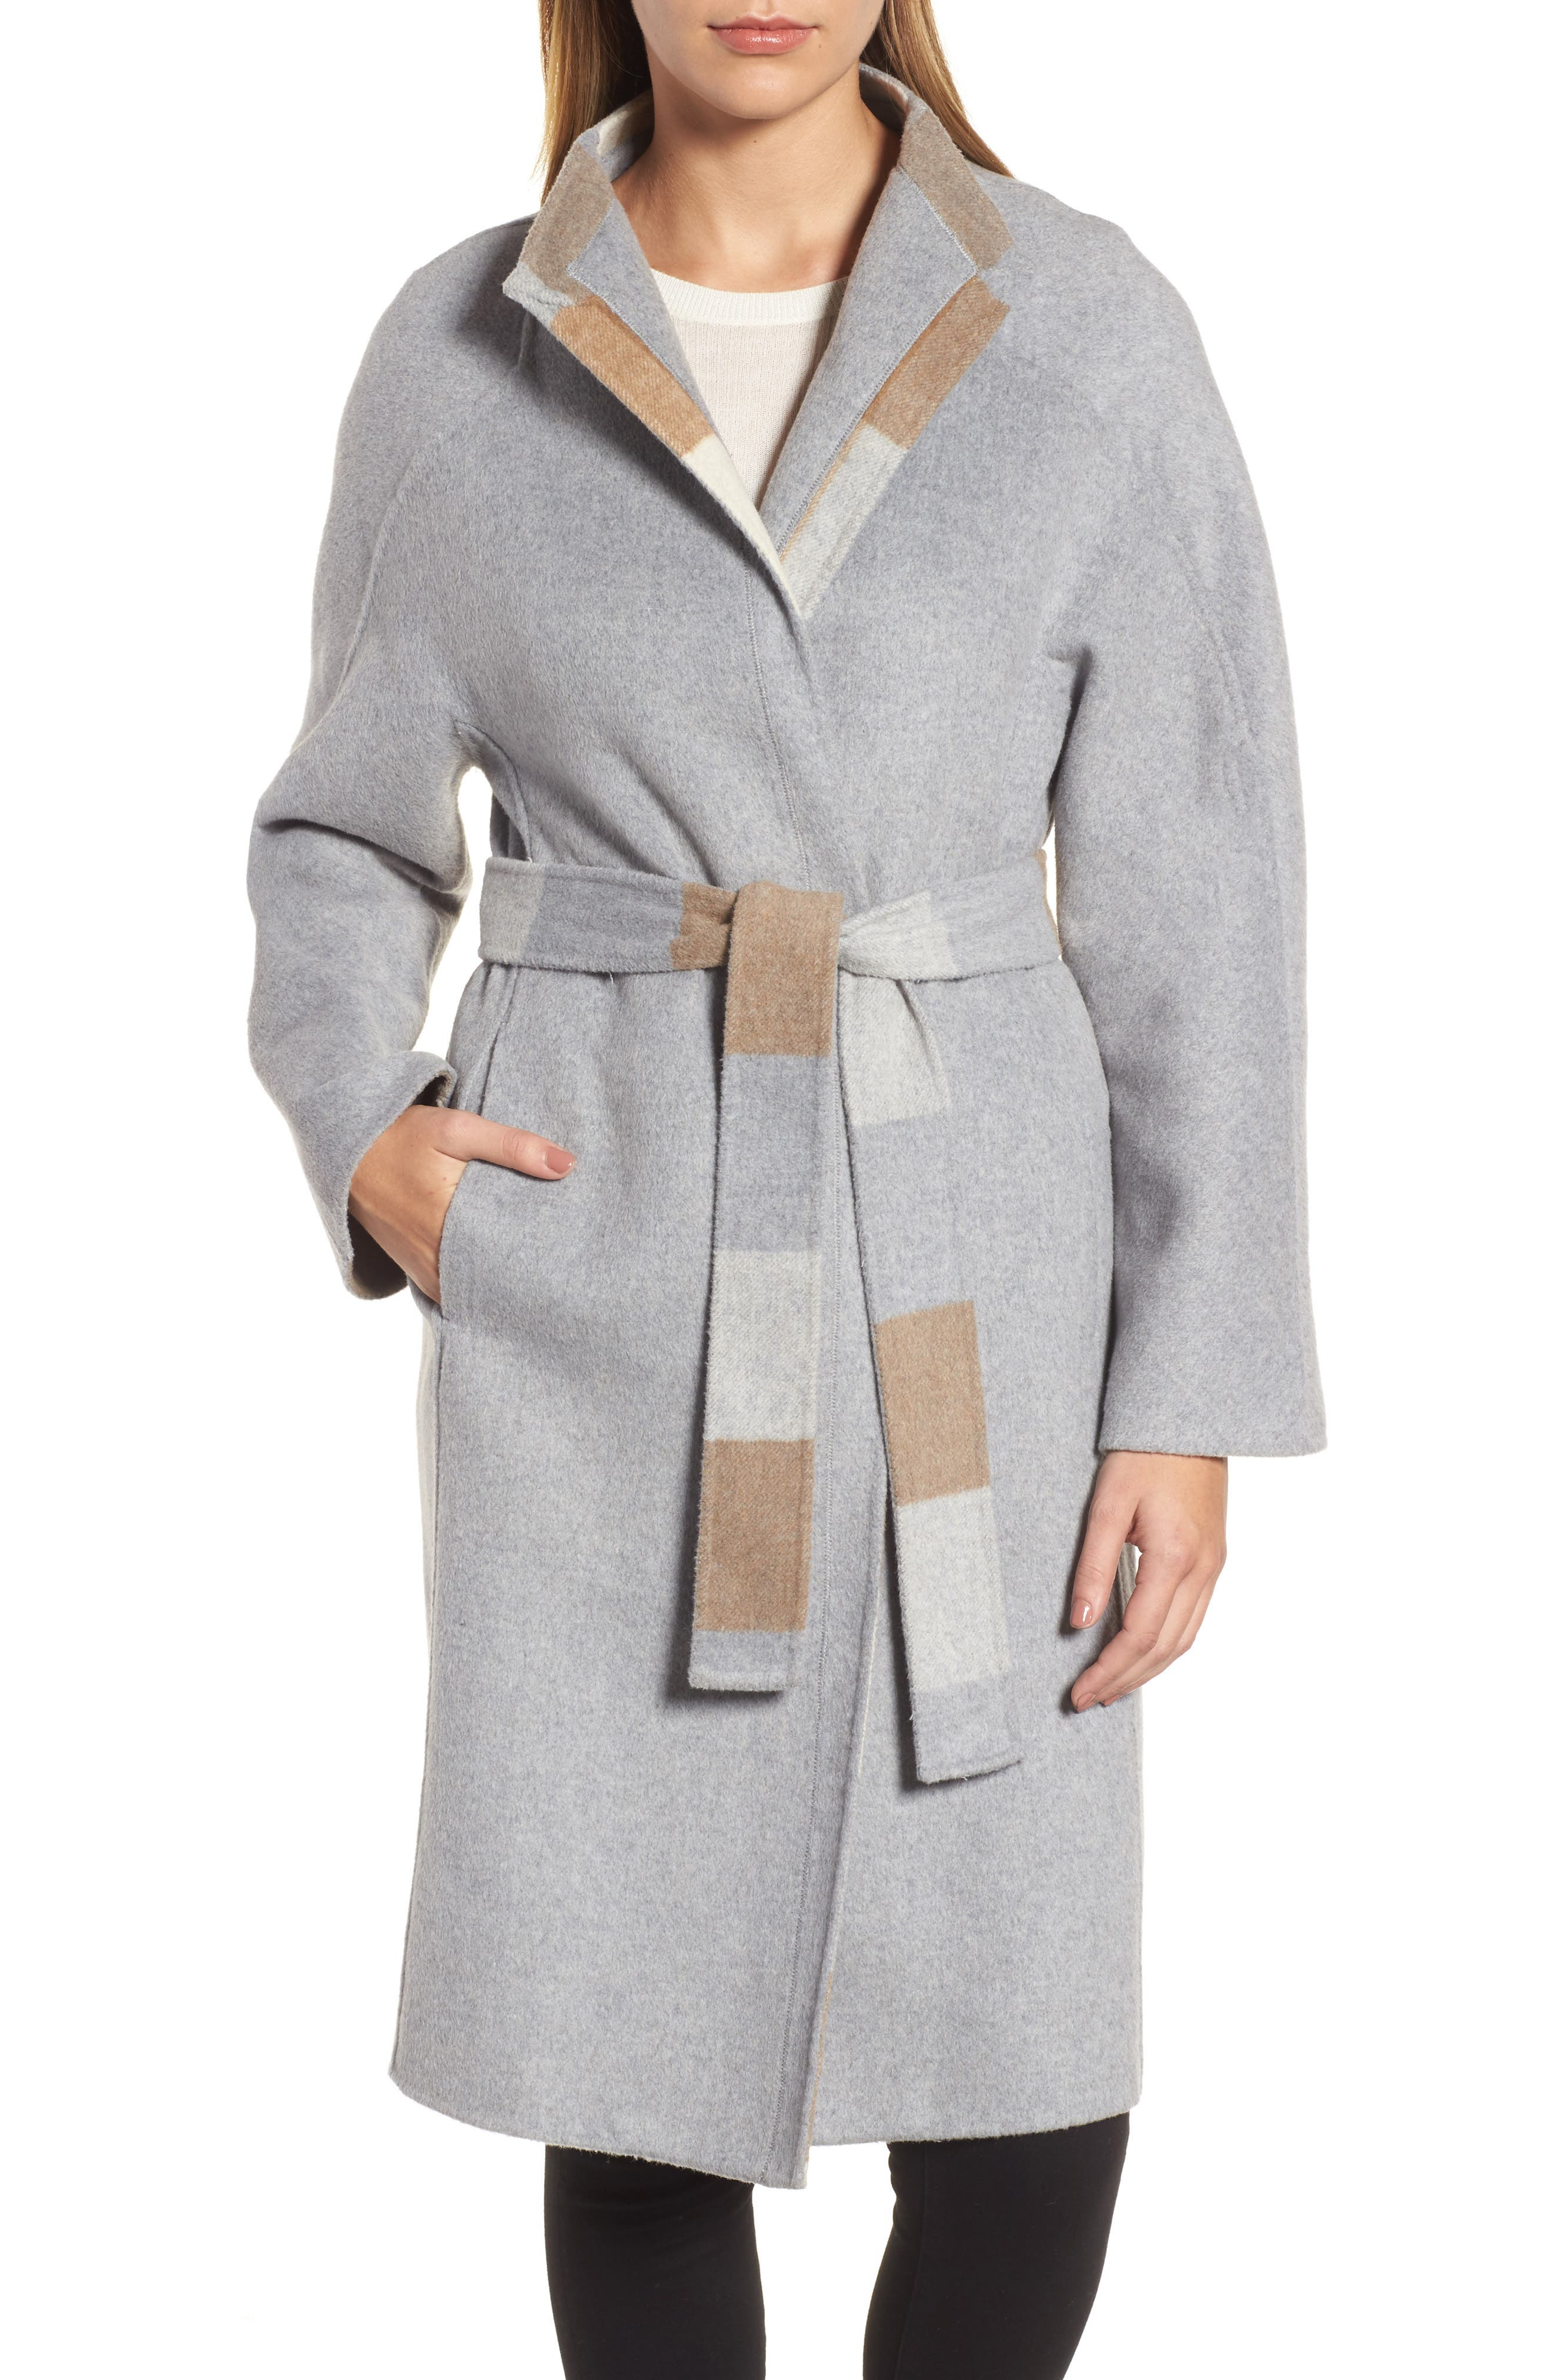 DKNY Wool Blend Wrap Coat,                         Main,                         color, Heather Grey